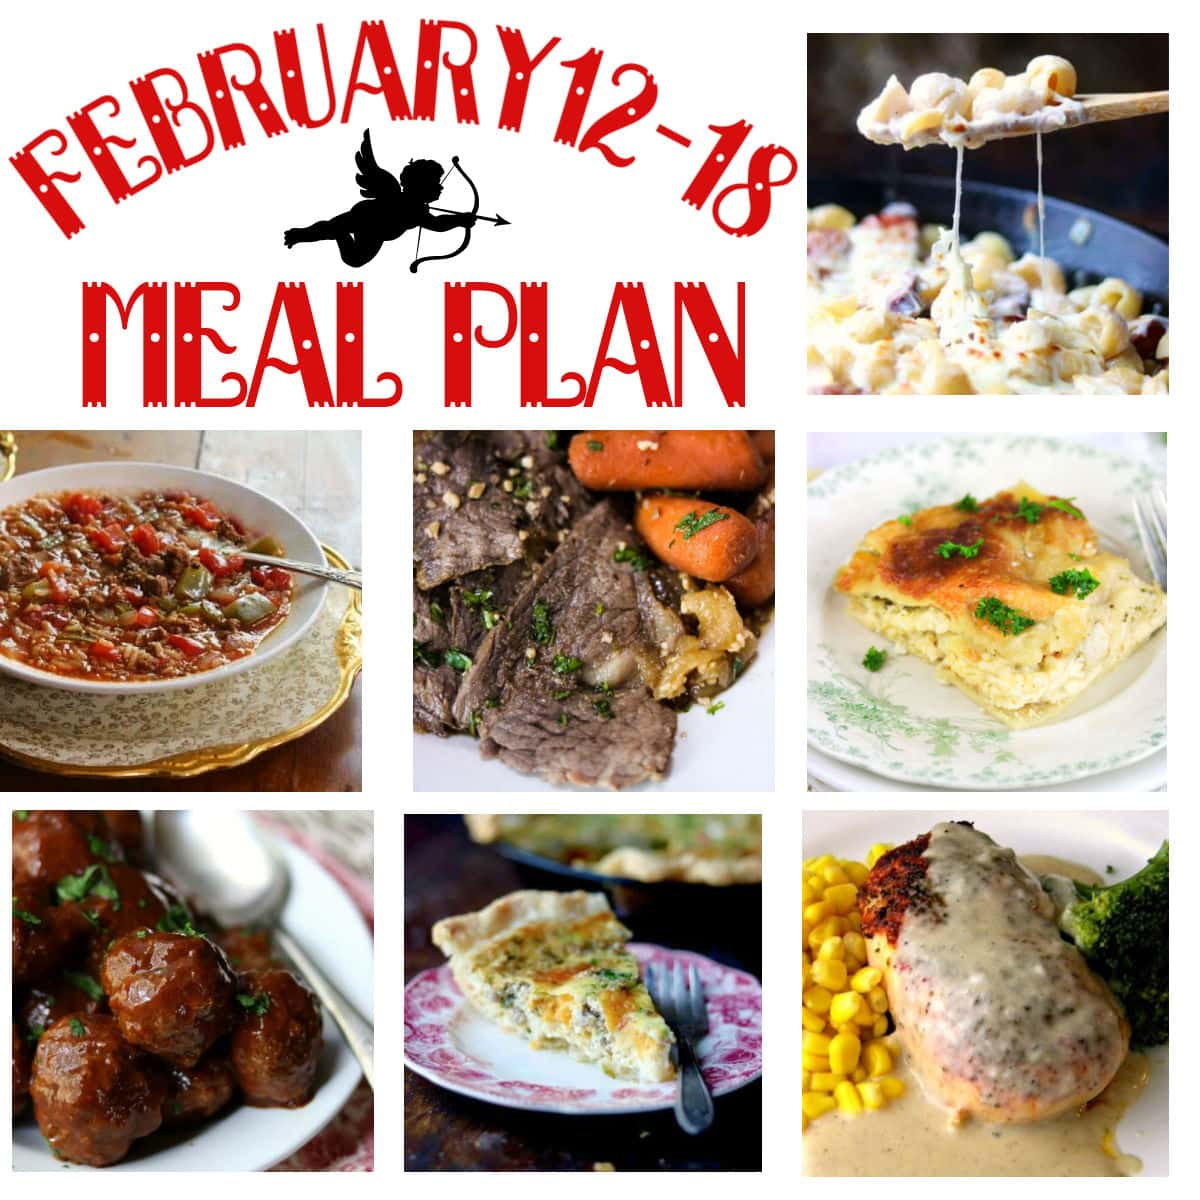 A collage of images from the meal plan.